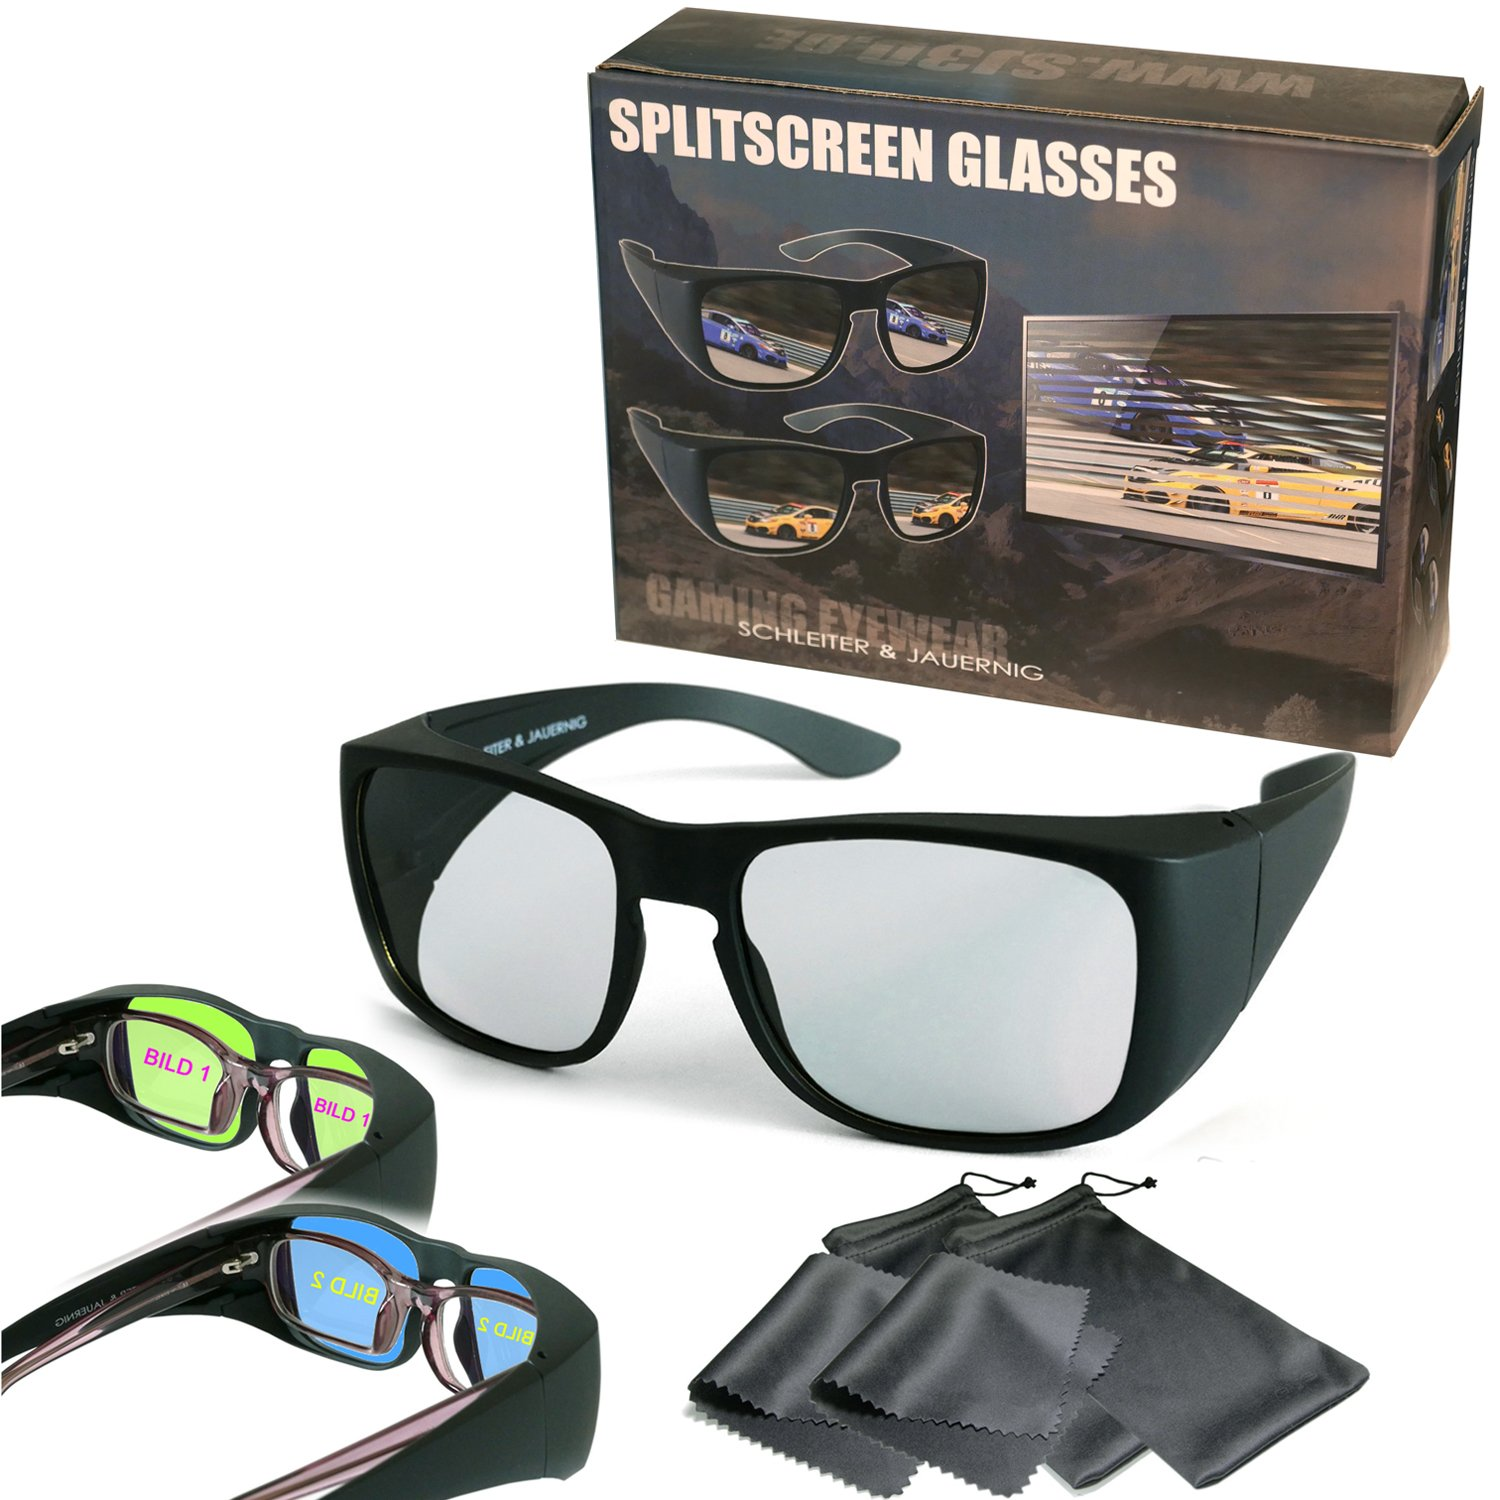 by Sony Split screen Glasses to wear over you optical glasses Dual Gaming by Passive Circular Polarized Compatible with Dual Play by LG 2 Player Gaming Overglasses passive version passive version by Philips Full Screen Gaming SimulView